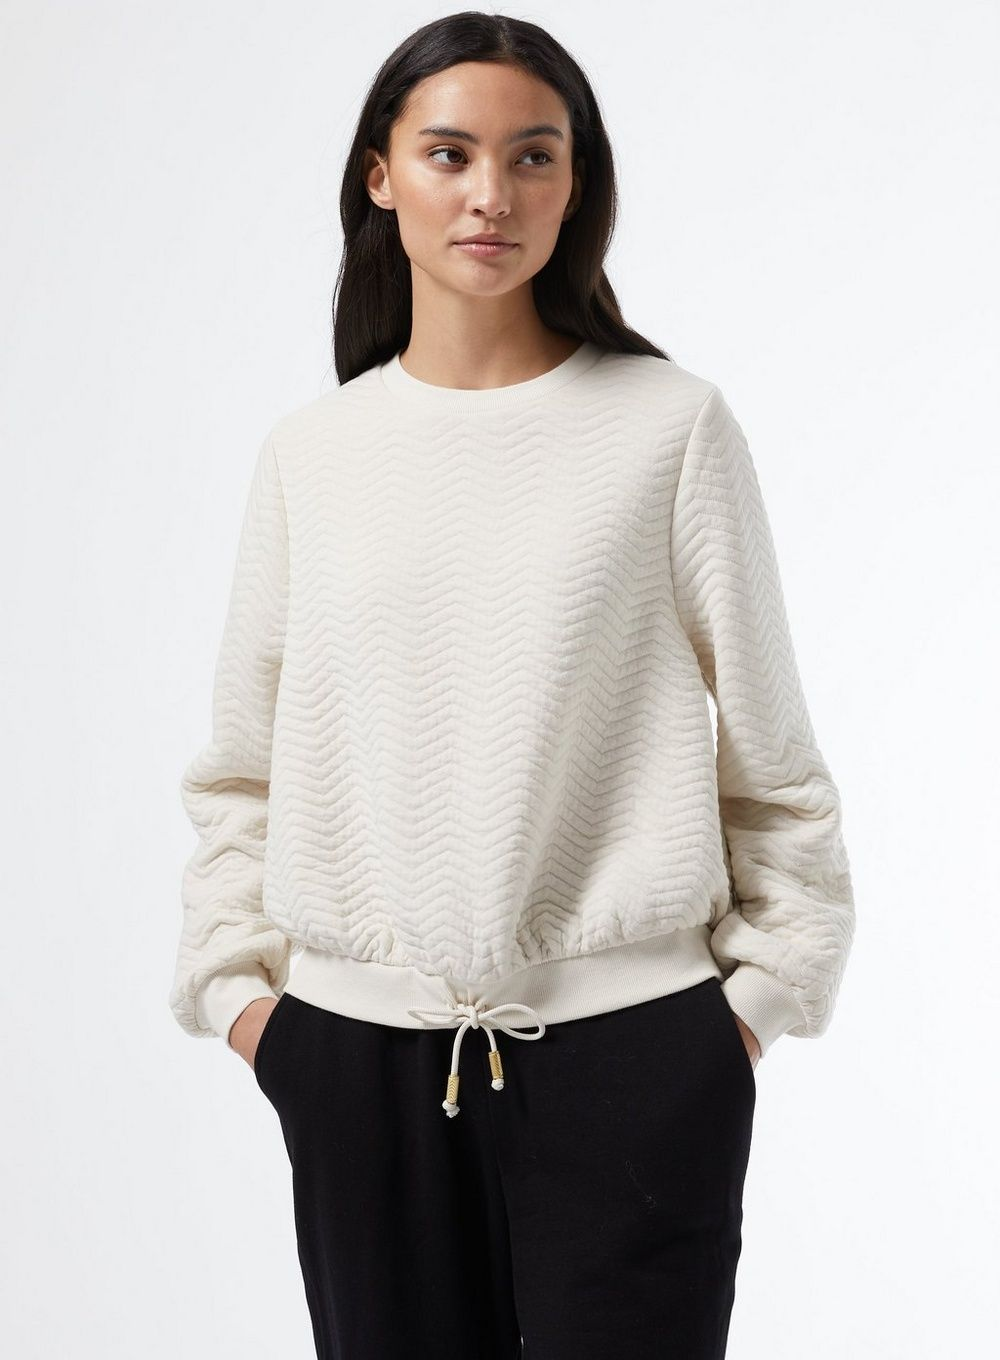 Dorothy Perkins Womens Petite White Jacquard Sweat Top Sweater Blouse Pullover